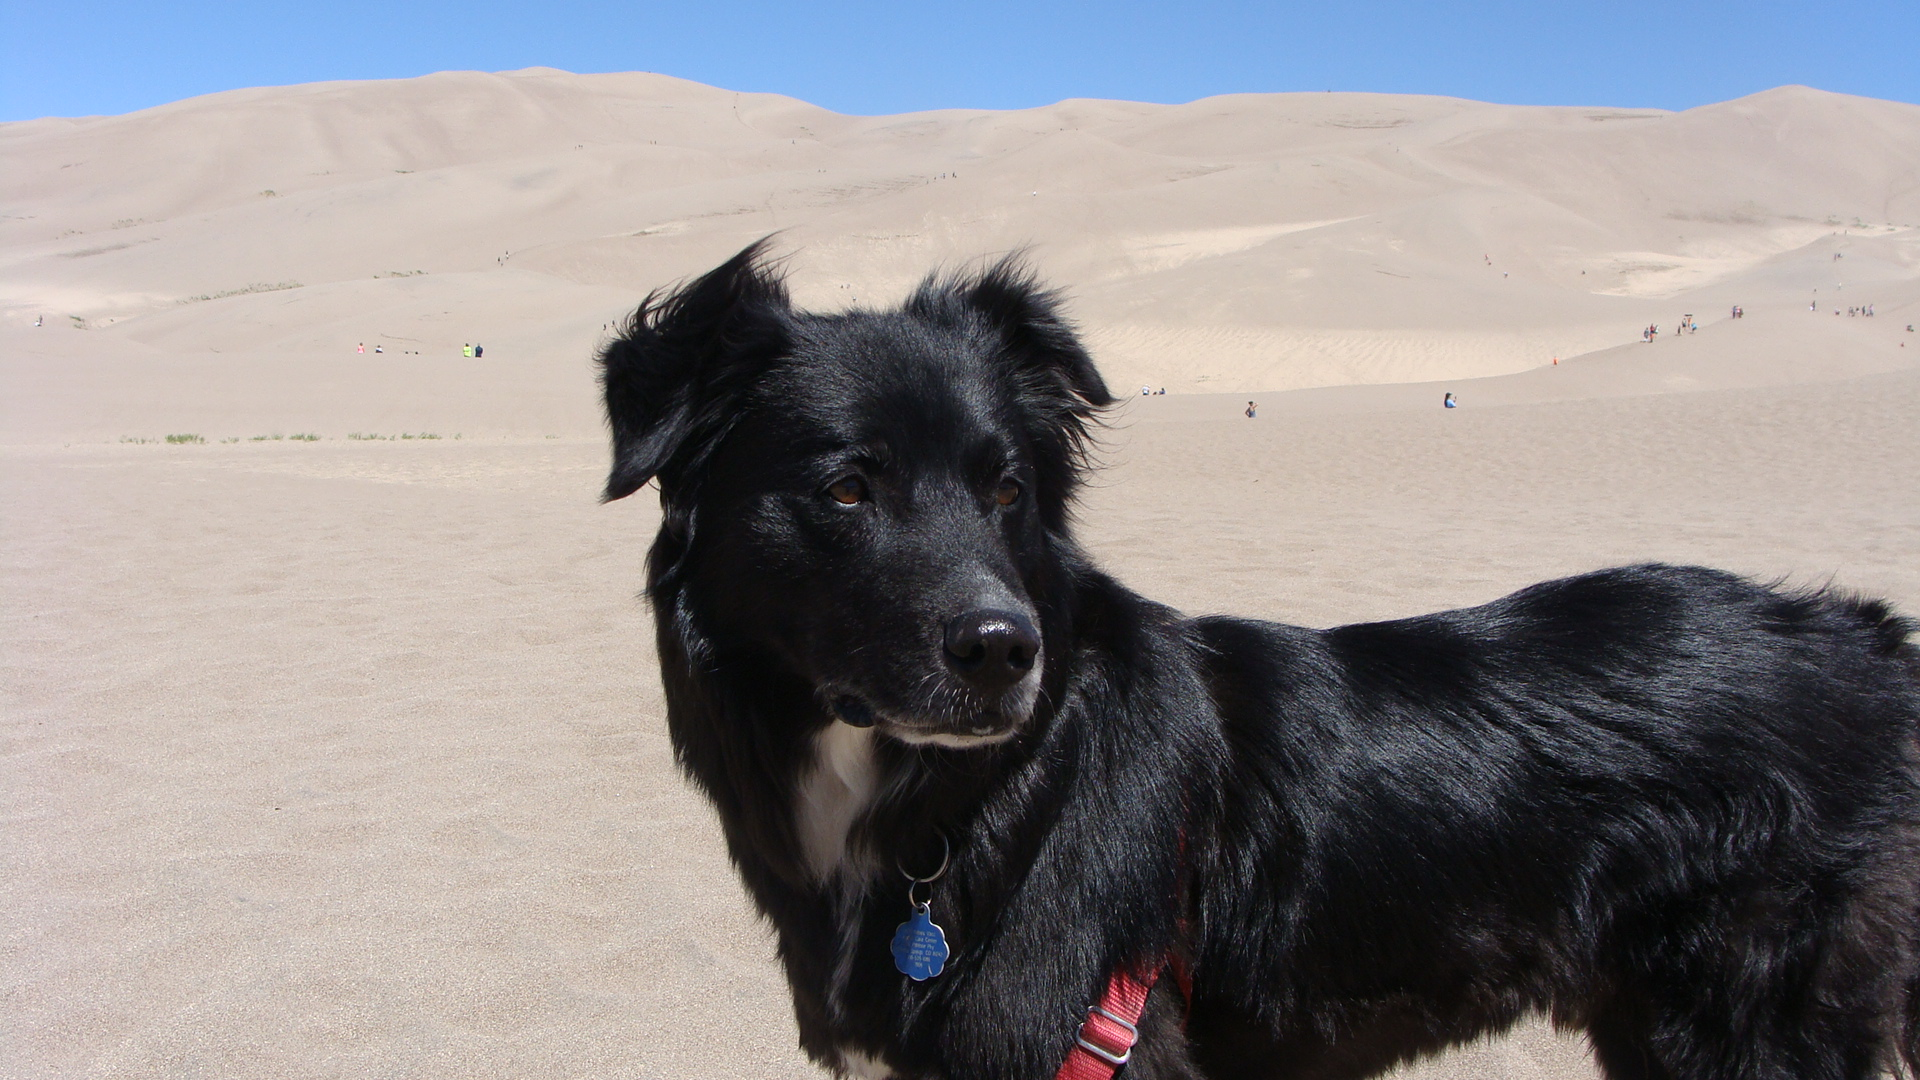 A mid-summer trip to the Great Sand Dunes nearby.